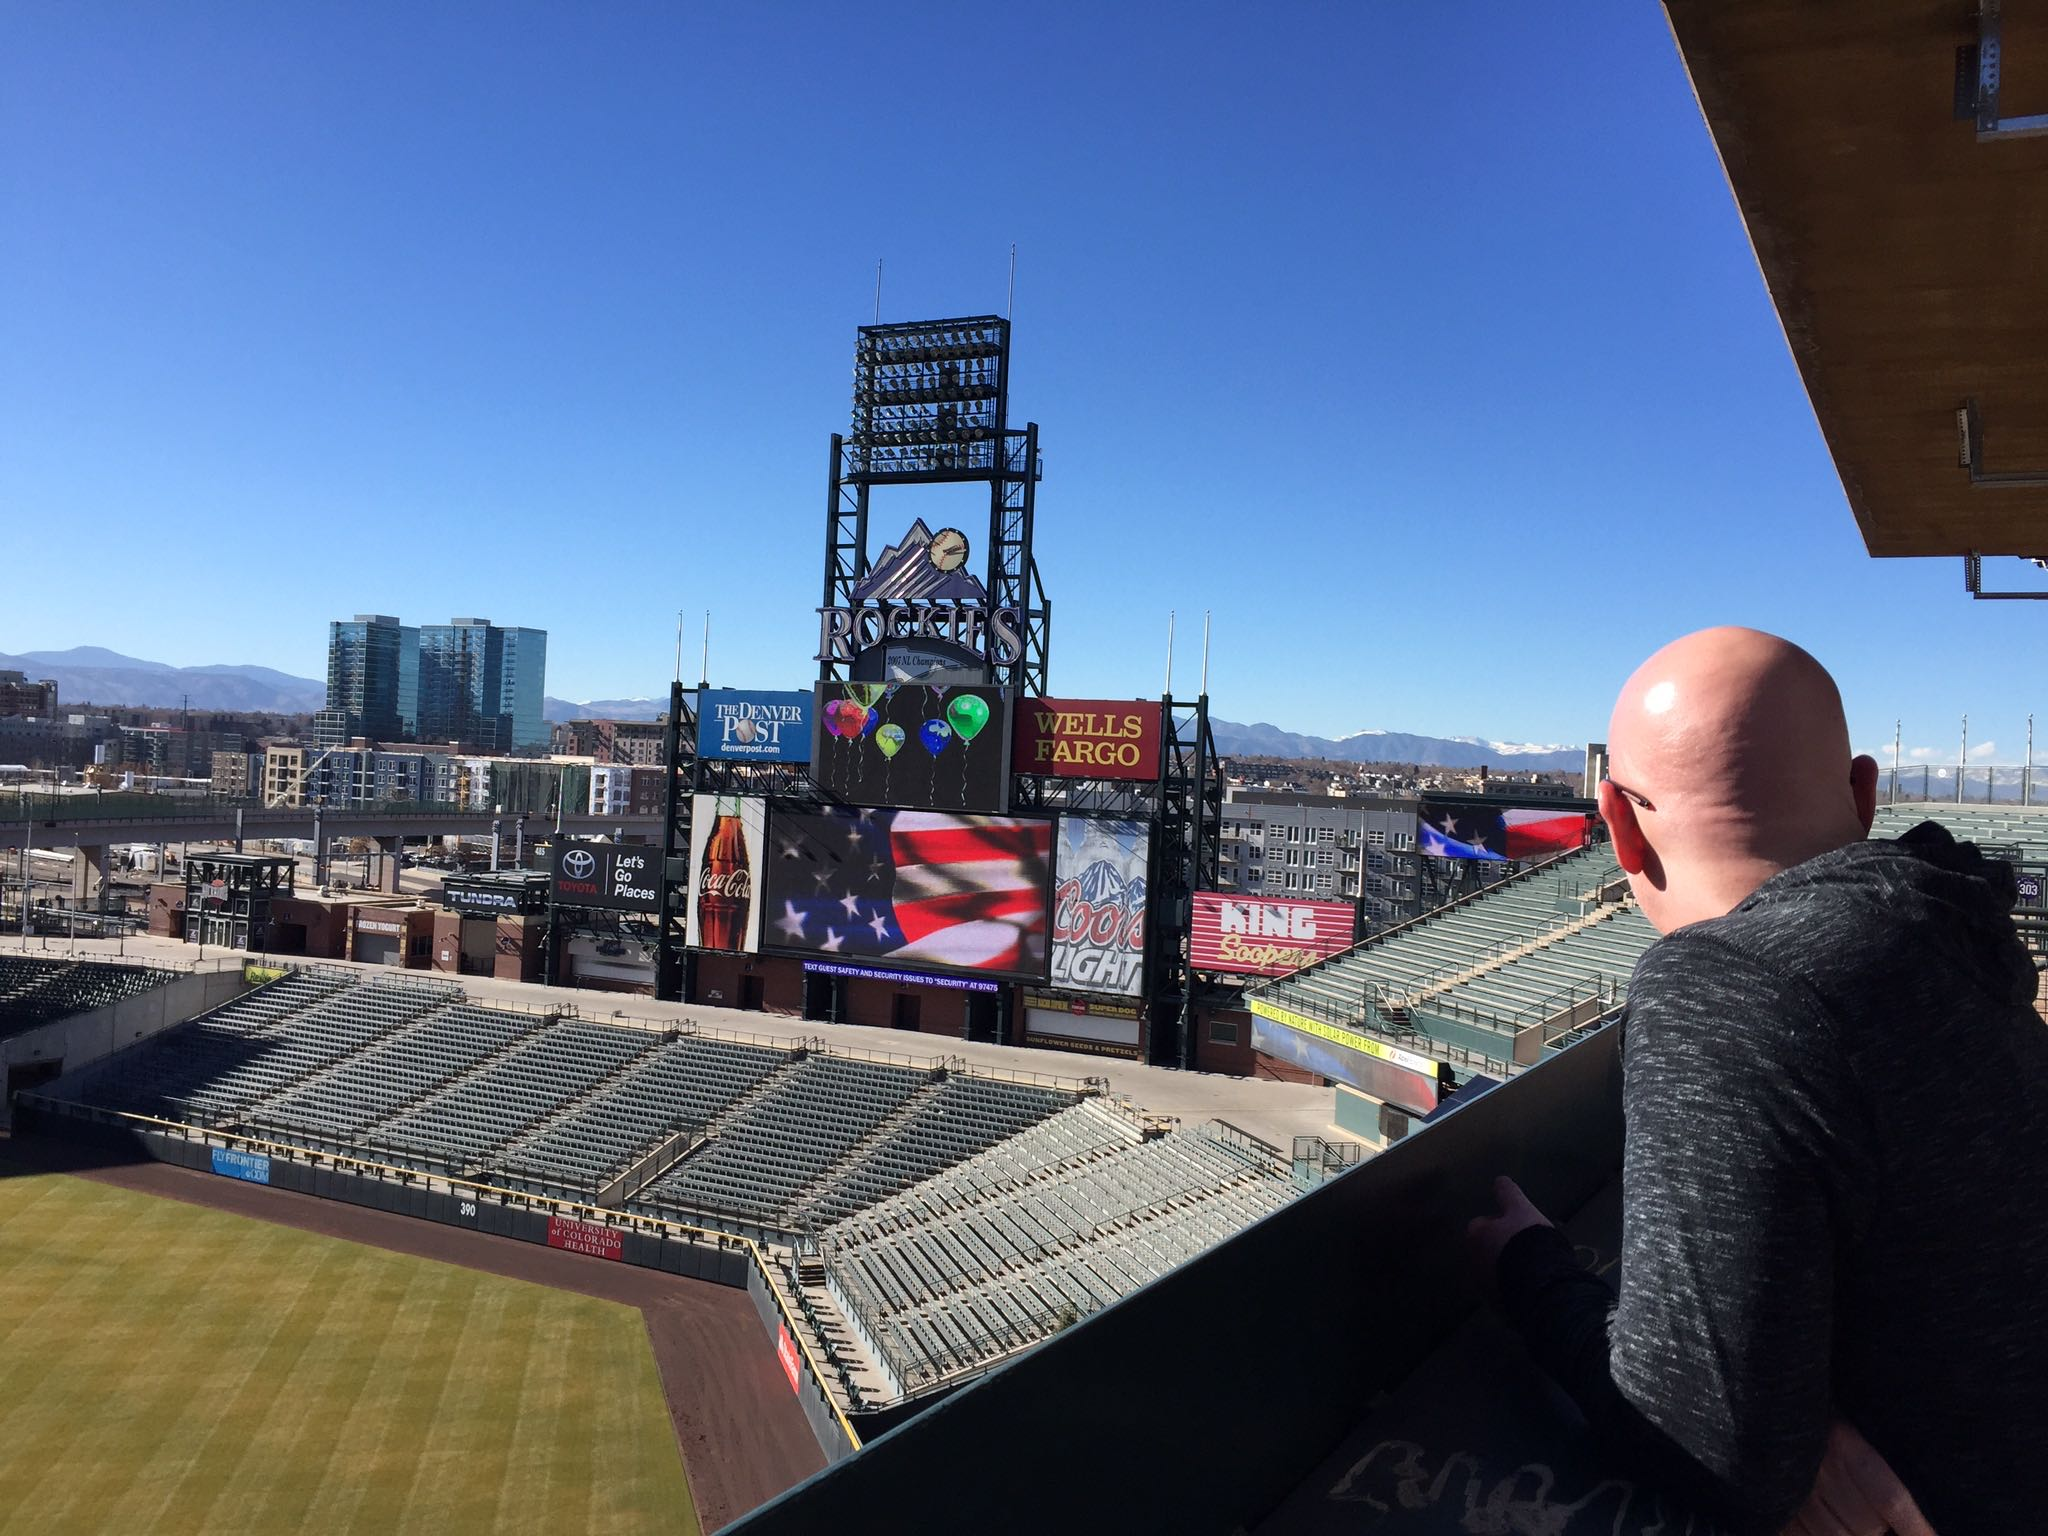 Michael checks out the LED testing on the scoreboard at Coors Field. The view of the mountains to the North is grand.